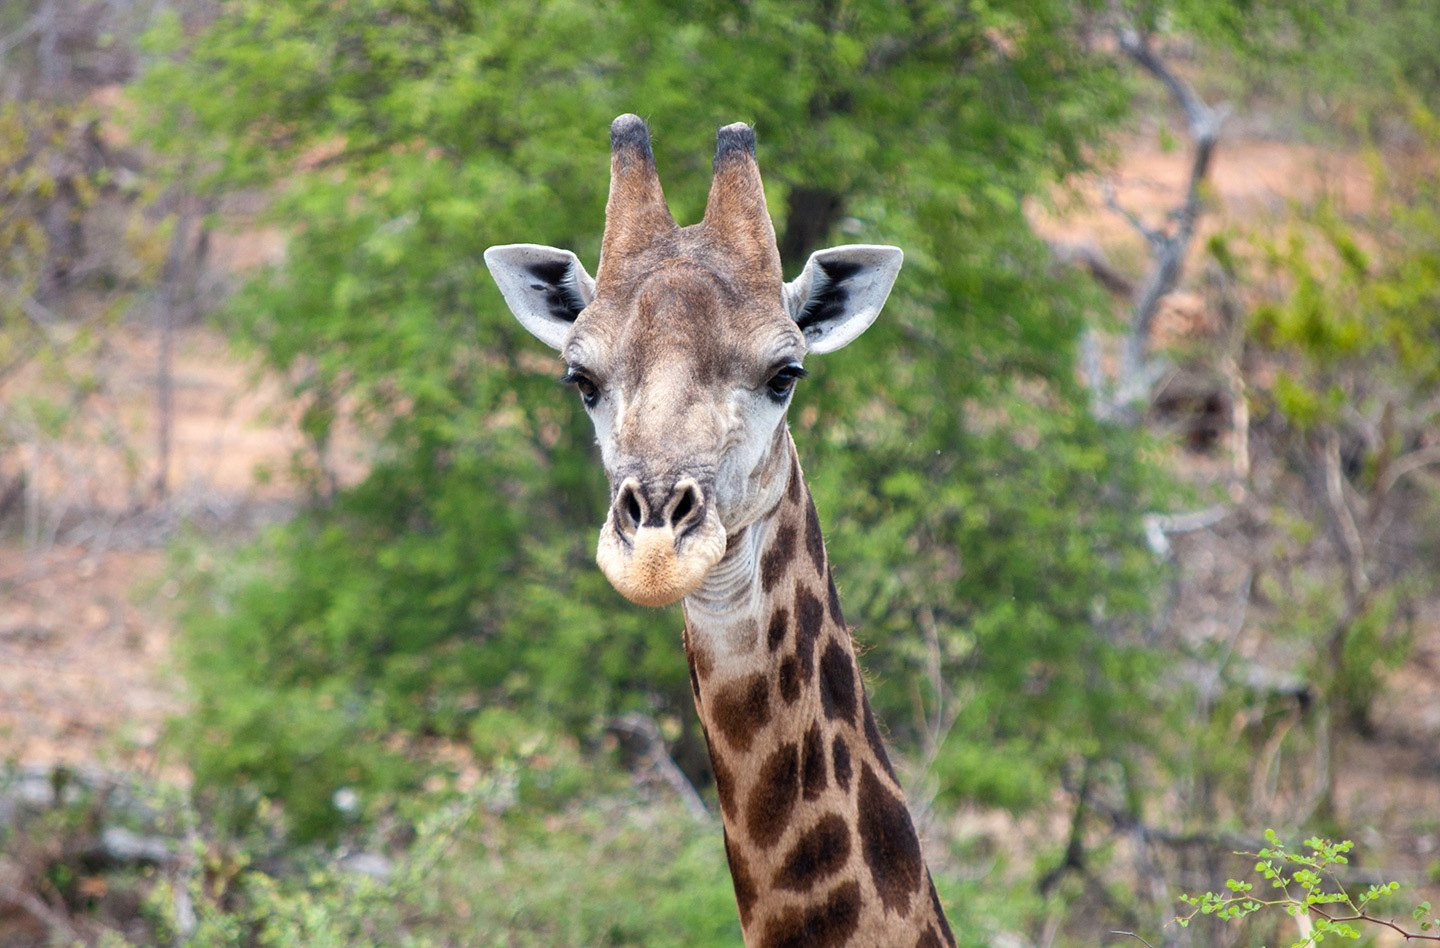 Giraffe in Balule Game Reserve South Africa